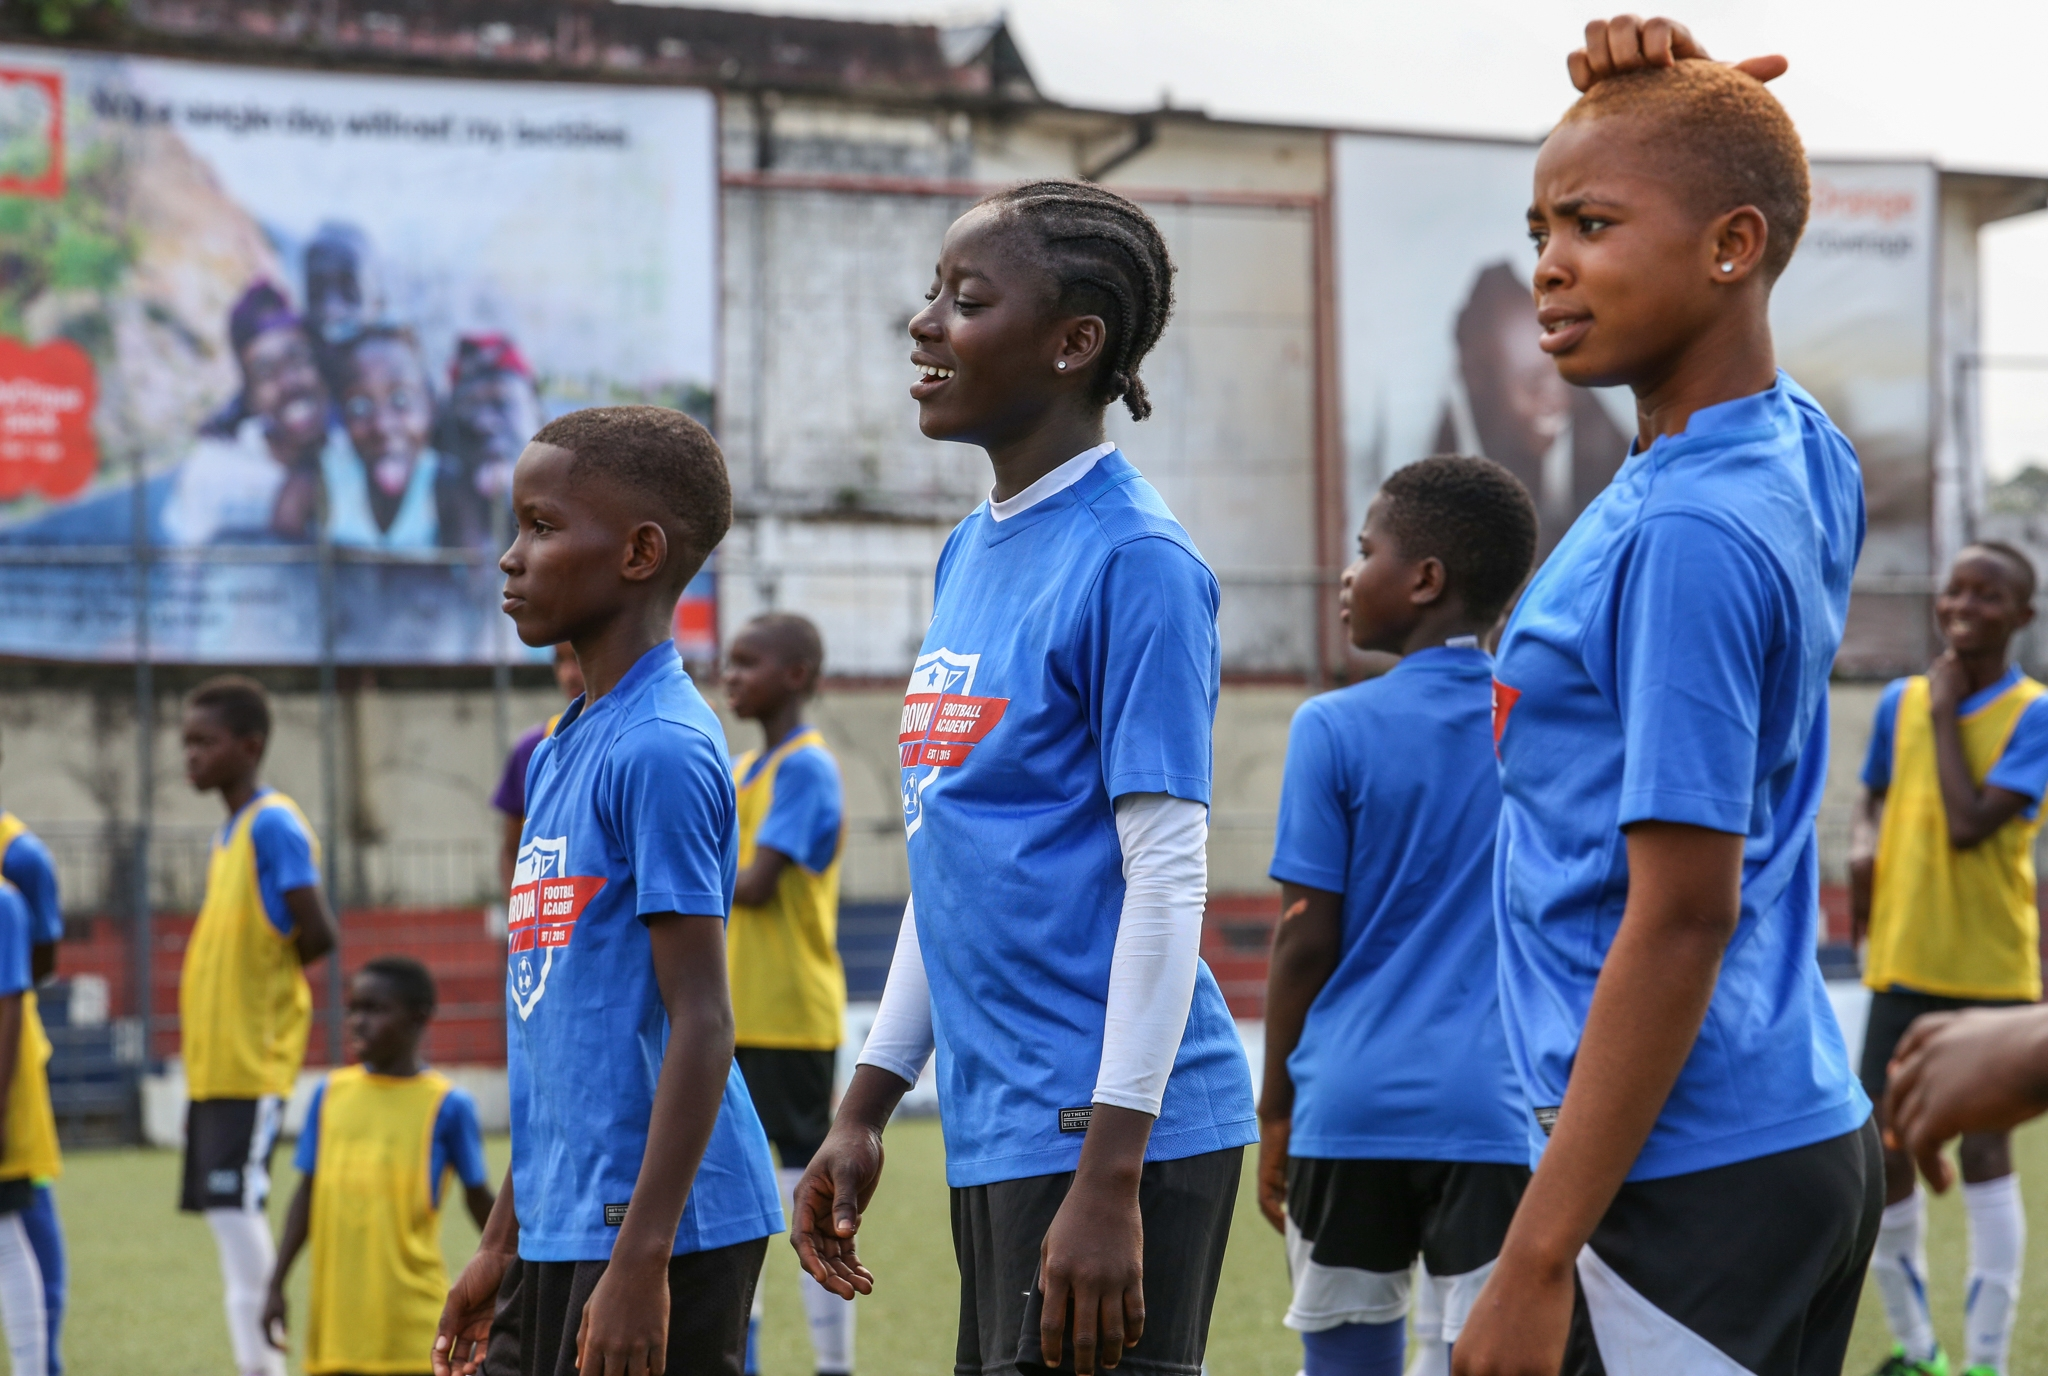 We target 54 academies by 2050 -one for every country on the continent. -